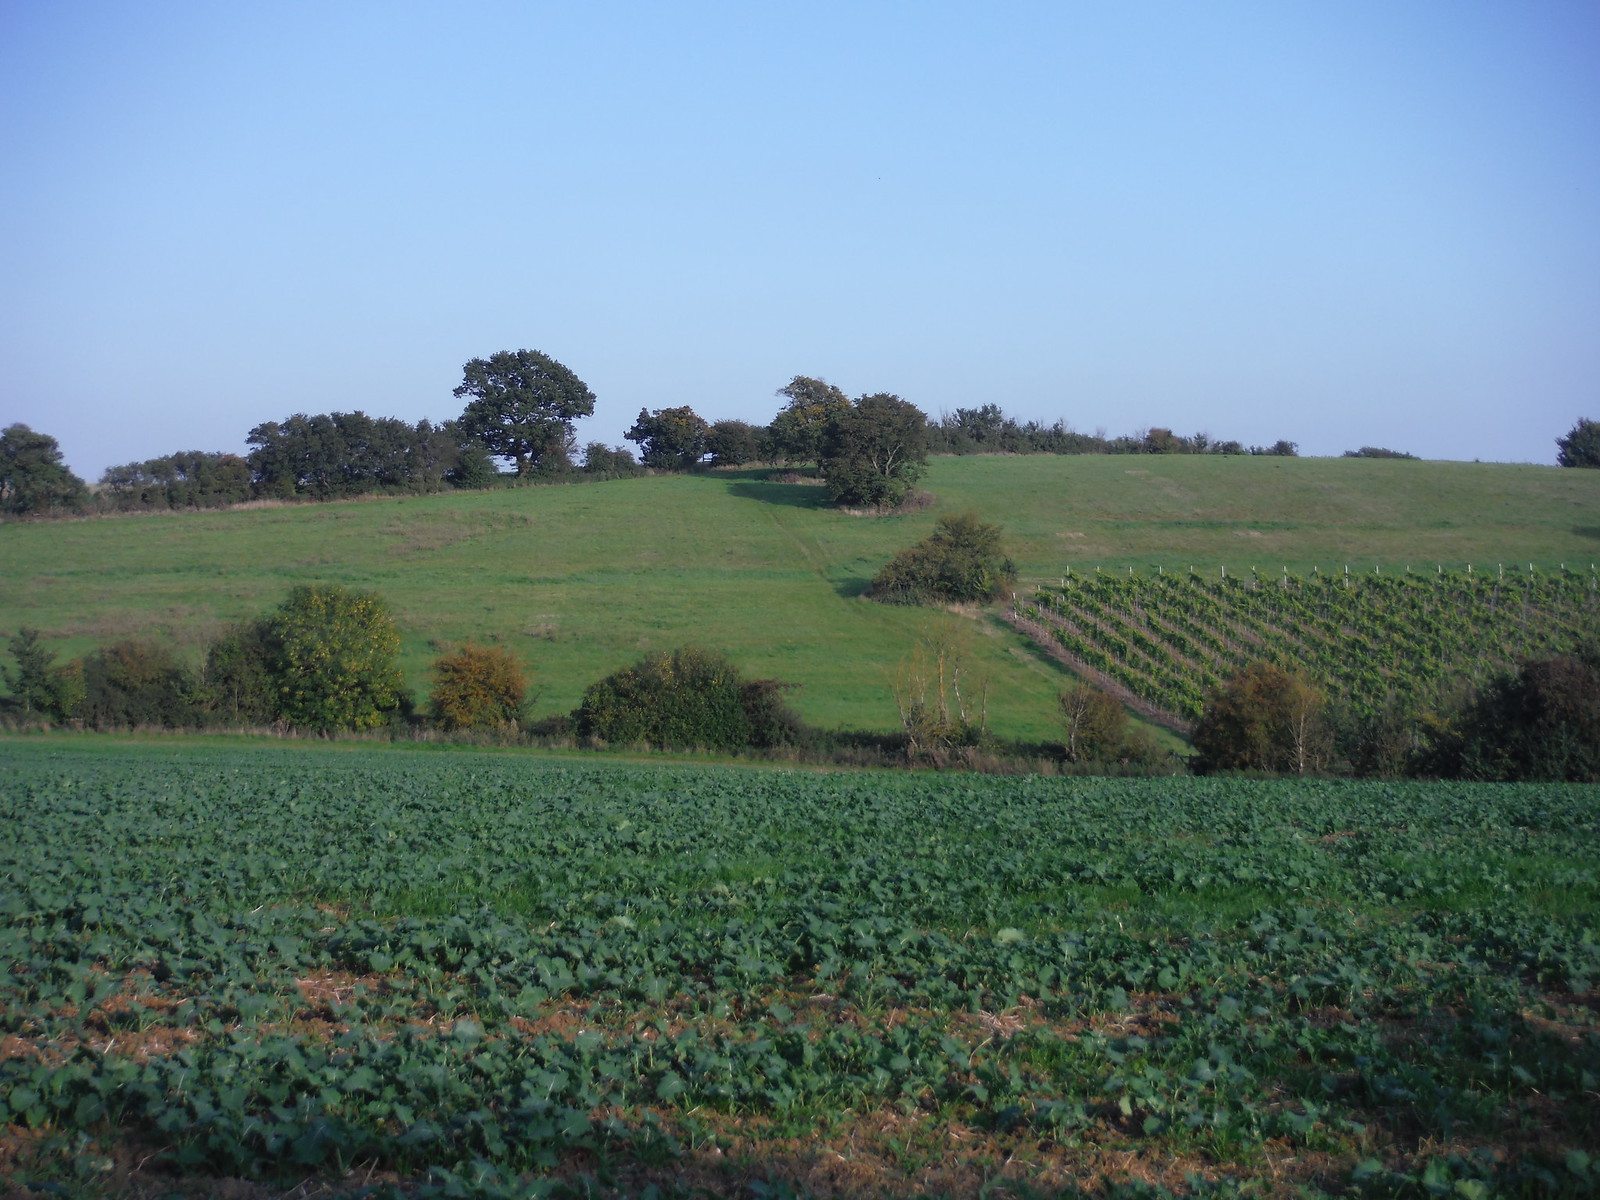 Vineyard in valley, near Hawe's Wood SWC Walk 159 South Woodham Ferrers to North Fambridge